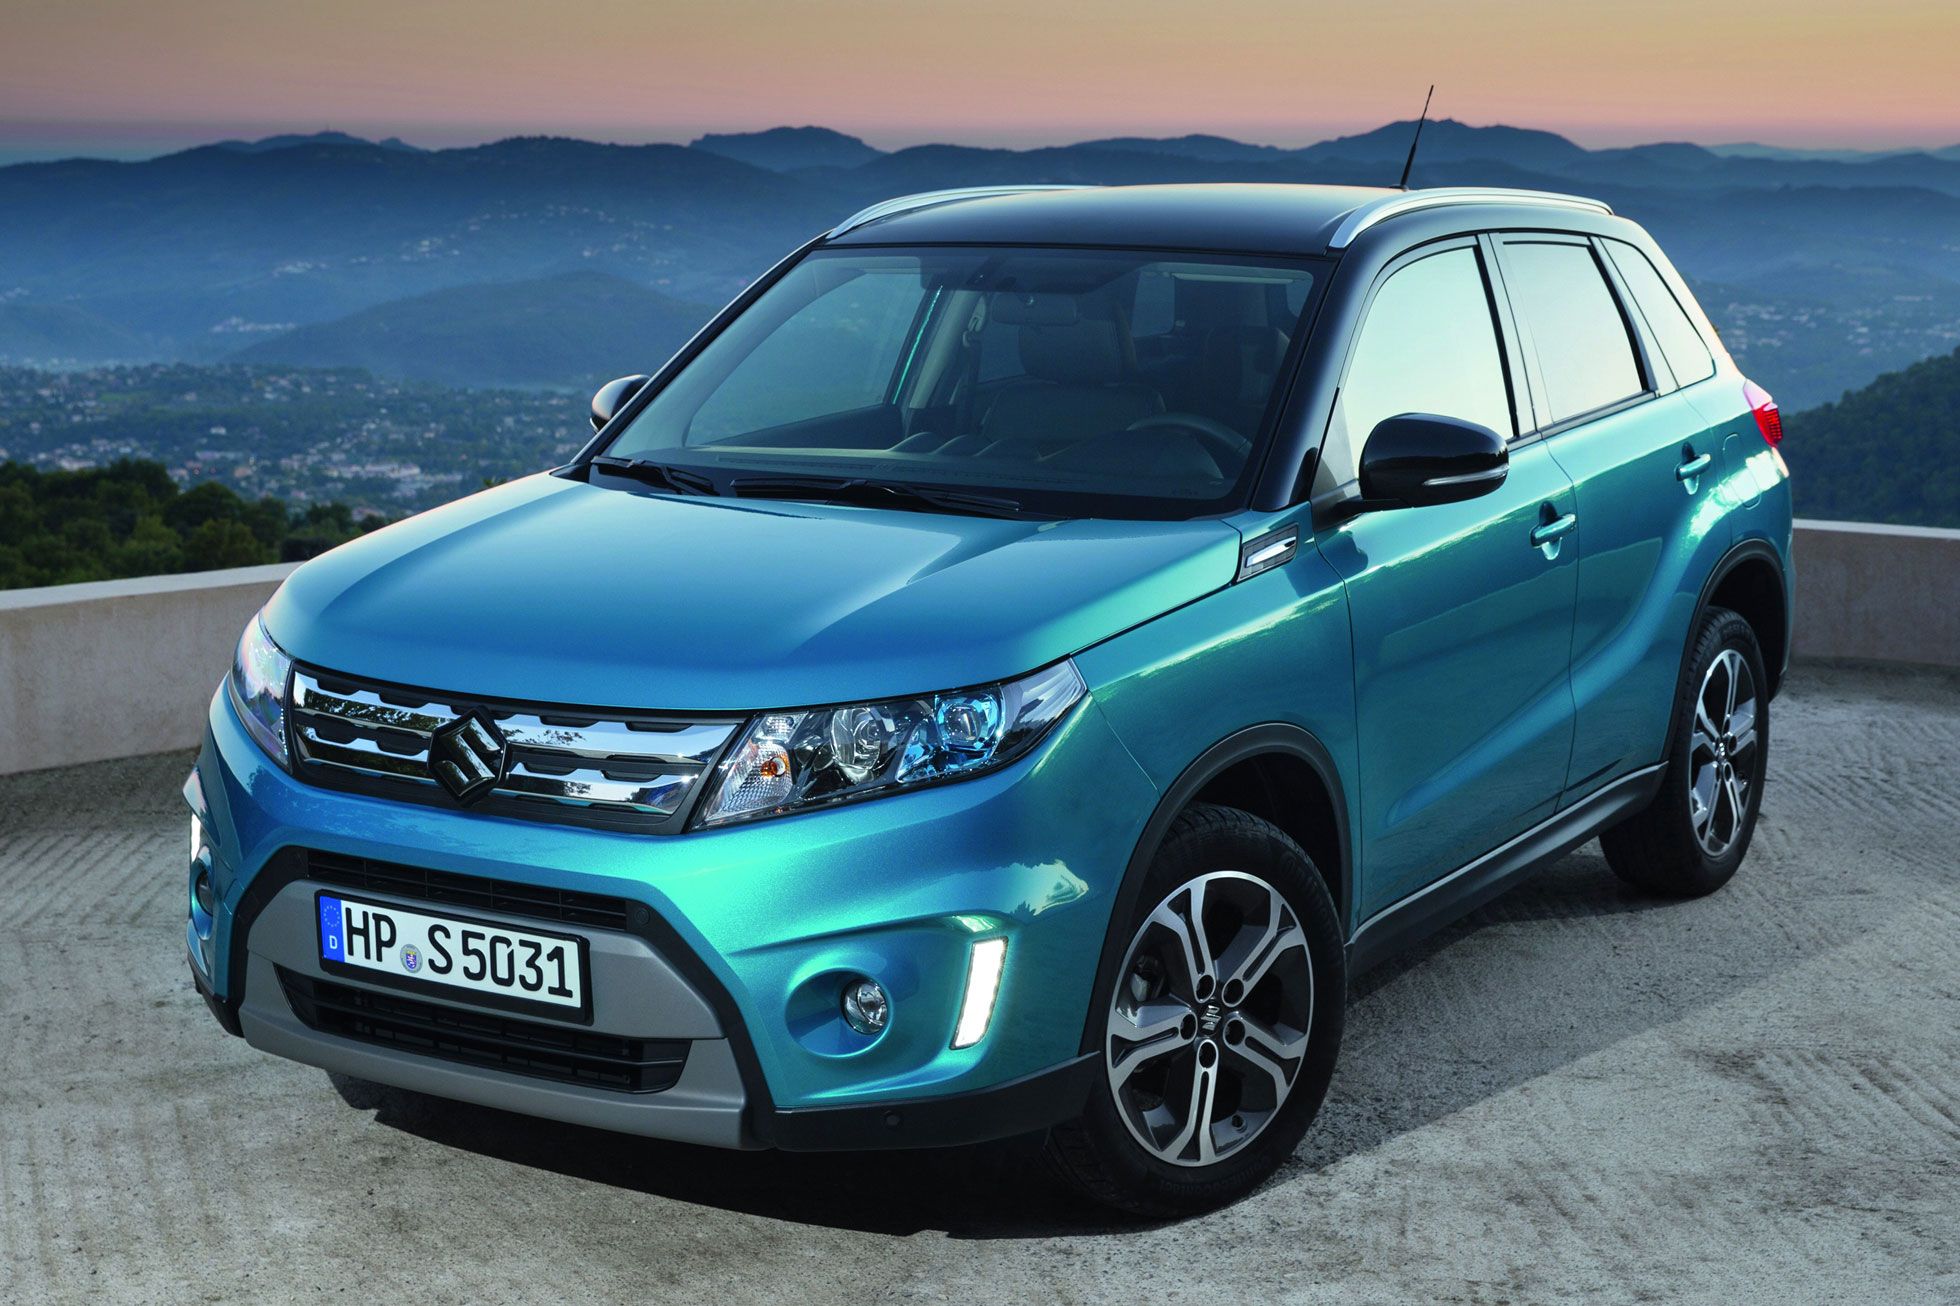 2015 Suzuki Vitara to start at £13,999